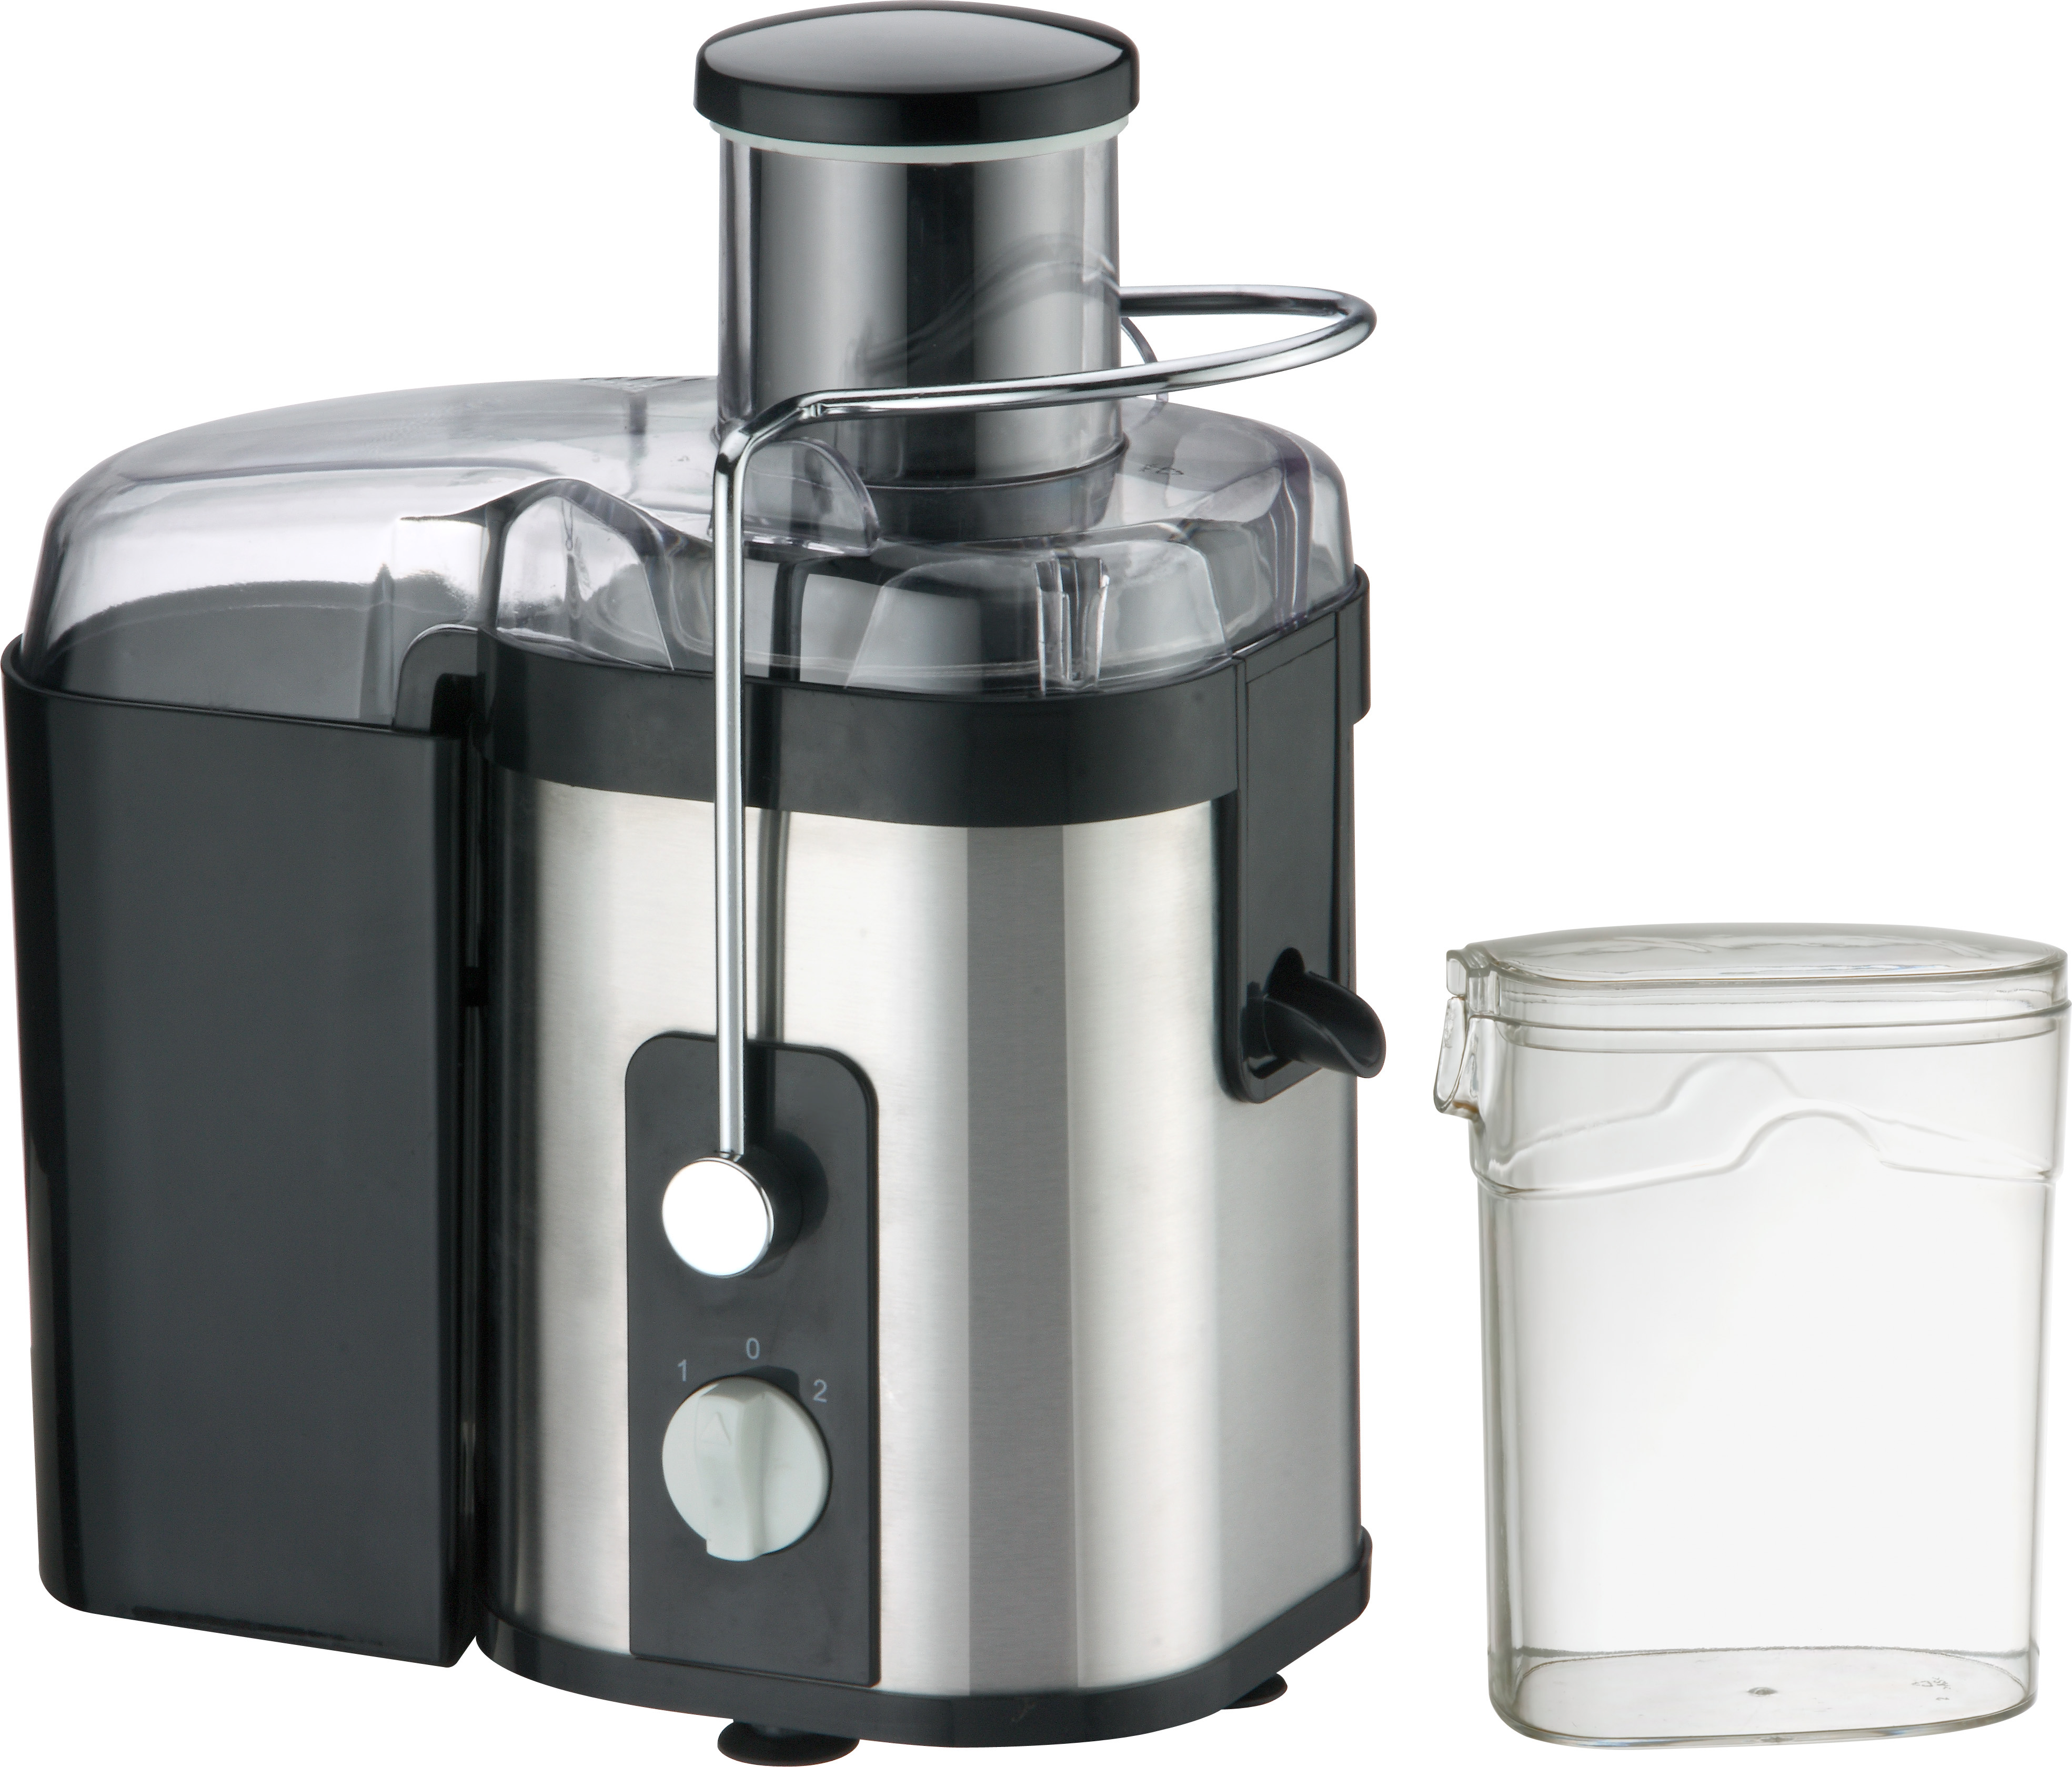 Metal Housing Power Juicer